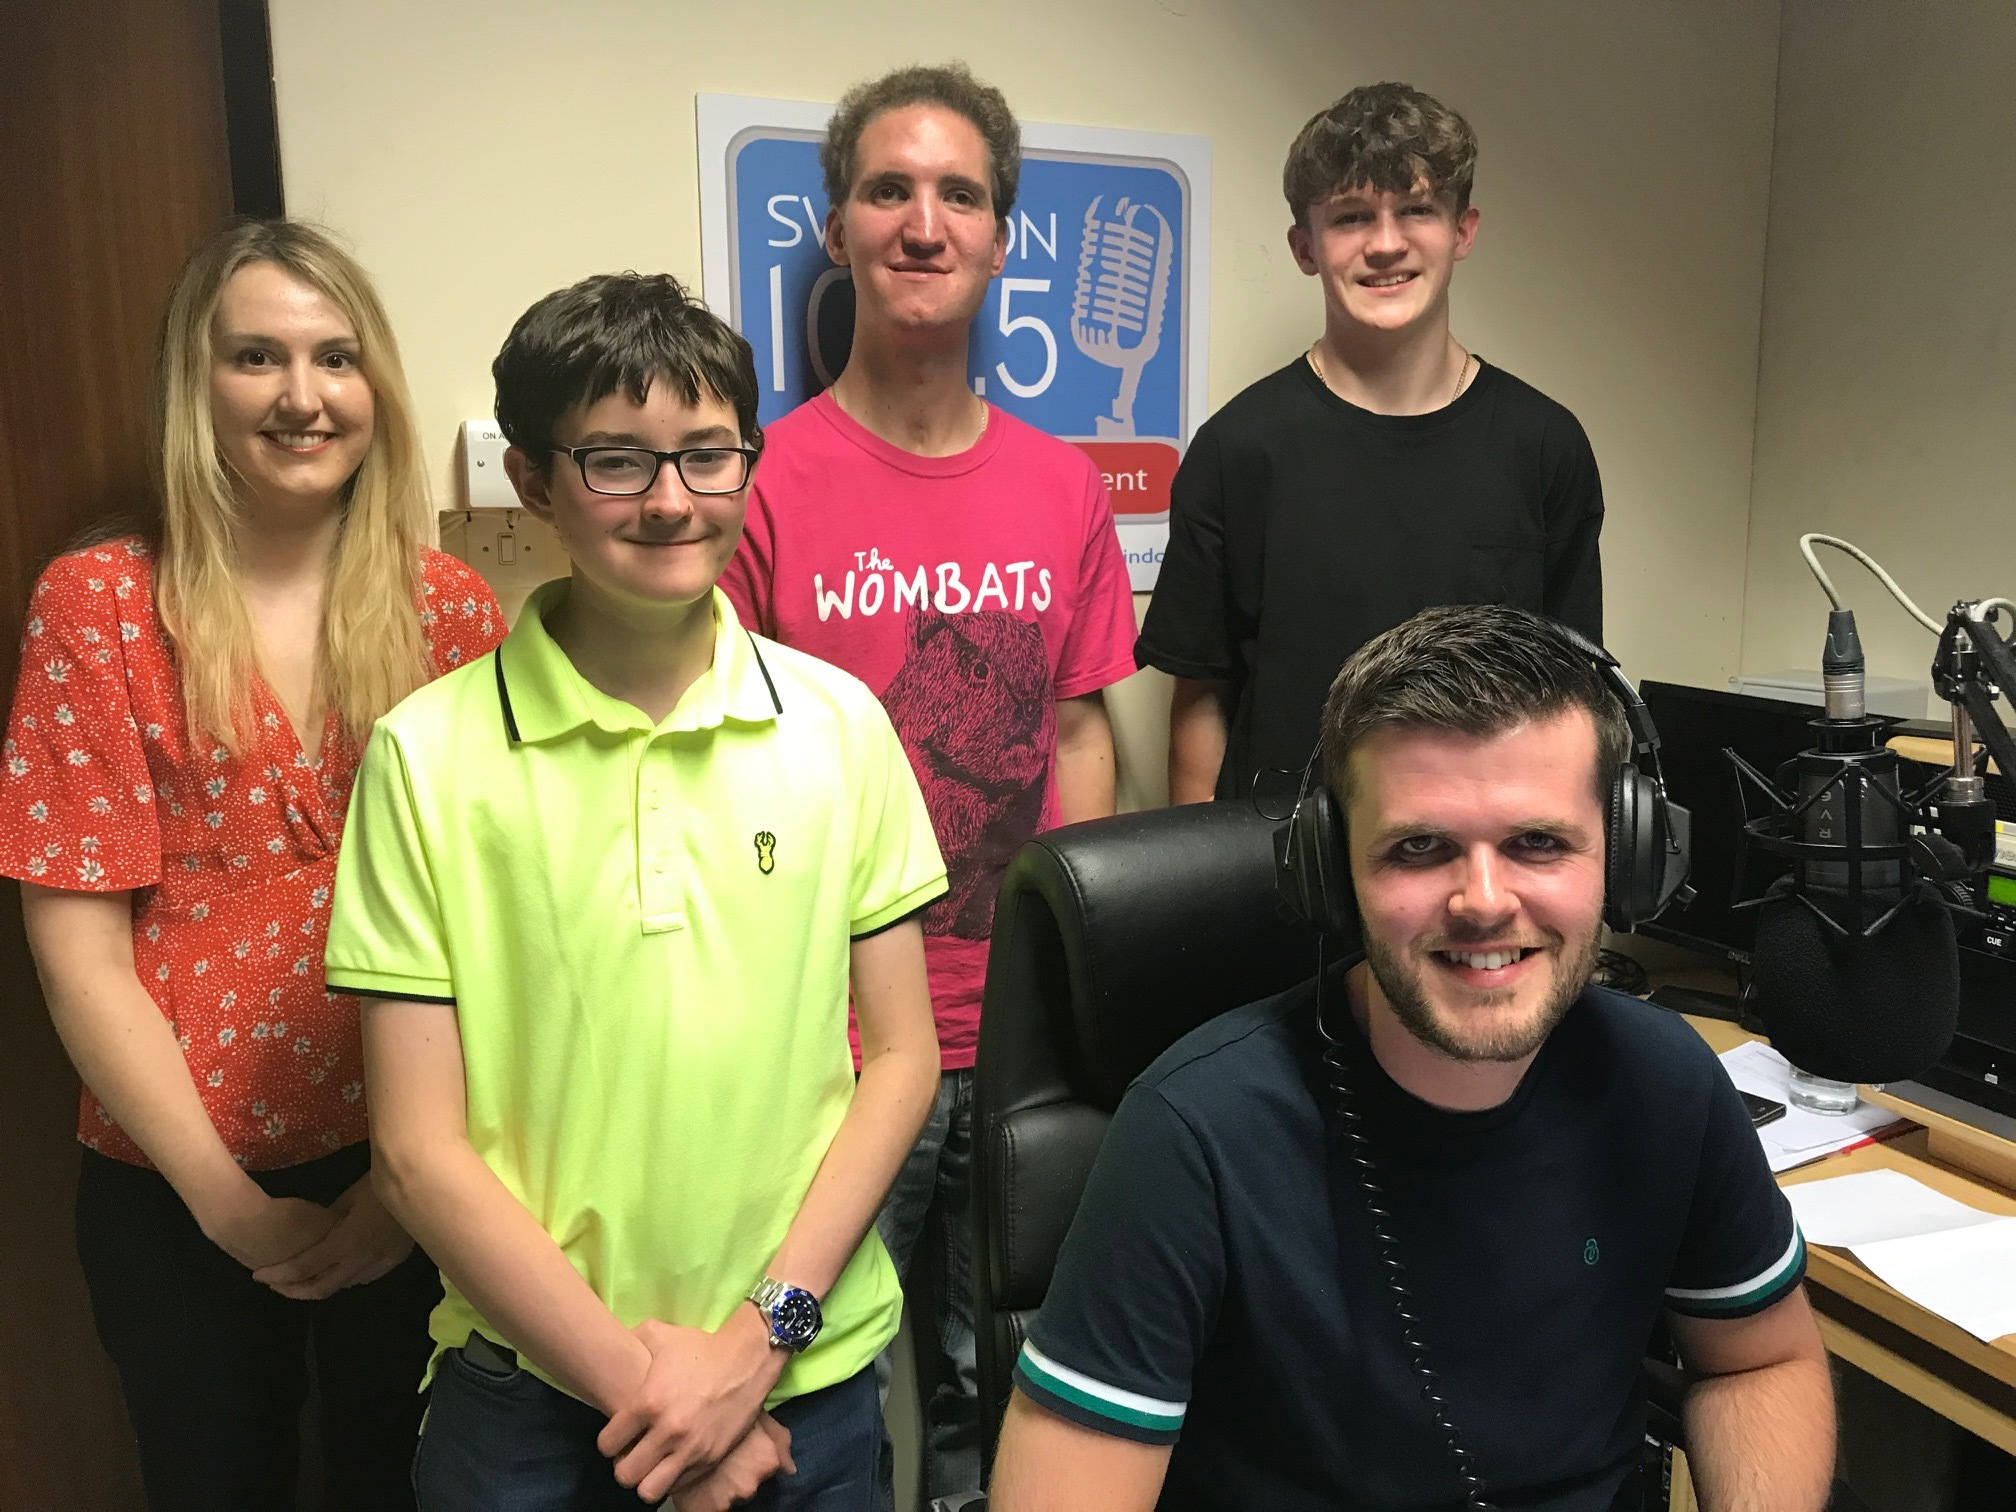 Swindon 105.5 radio station's Youth Matters show moves to new timeslot